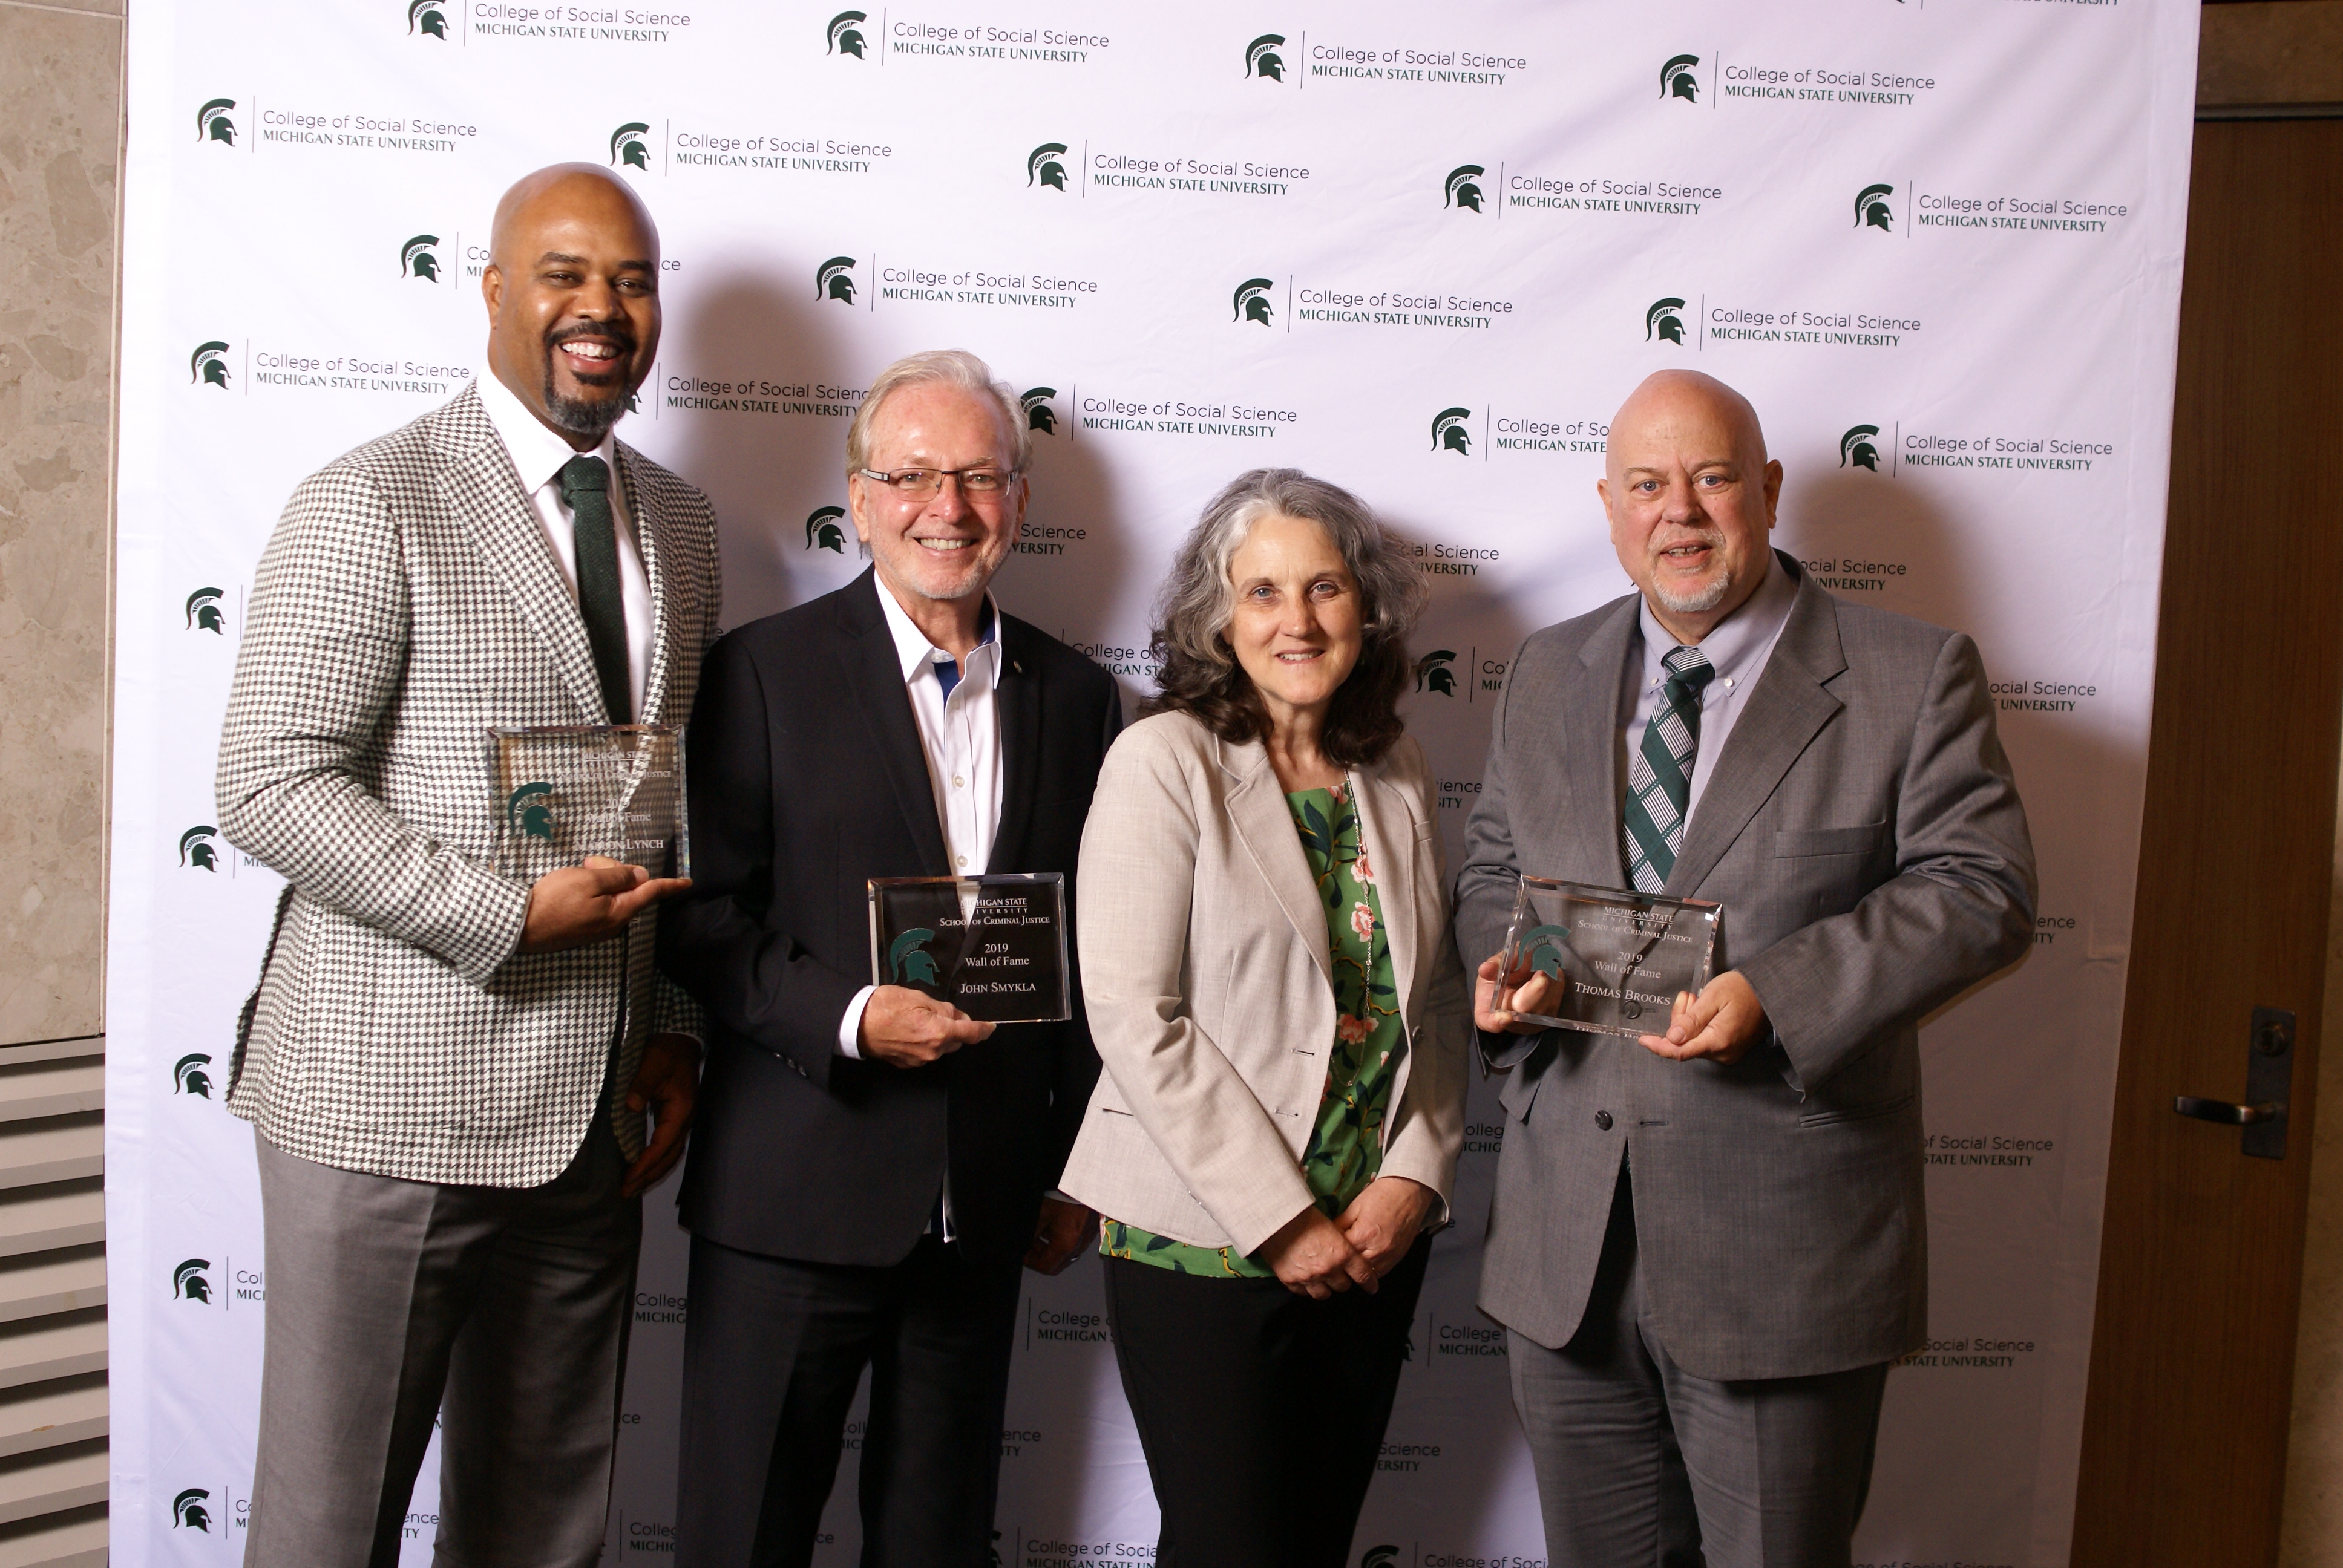 Marlon Lynch, Dr. John Smykla, Mary Finn (Director), and Thomas Brooks